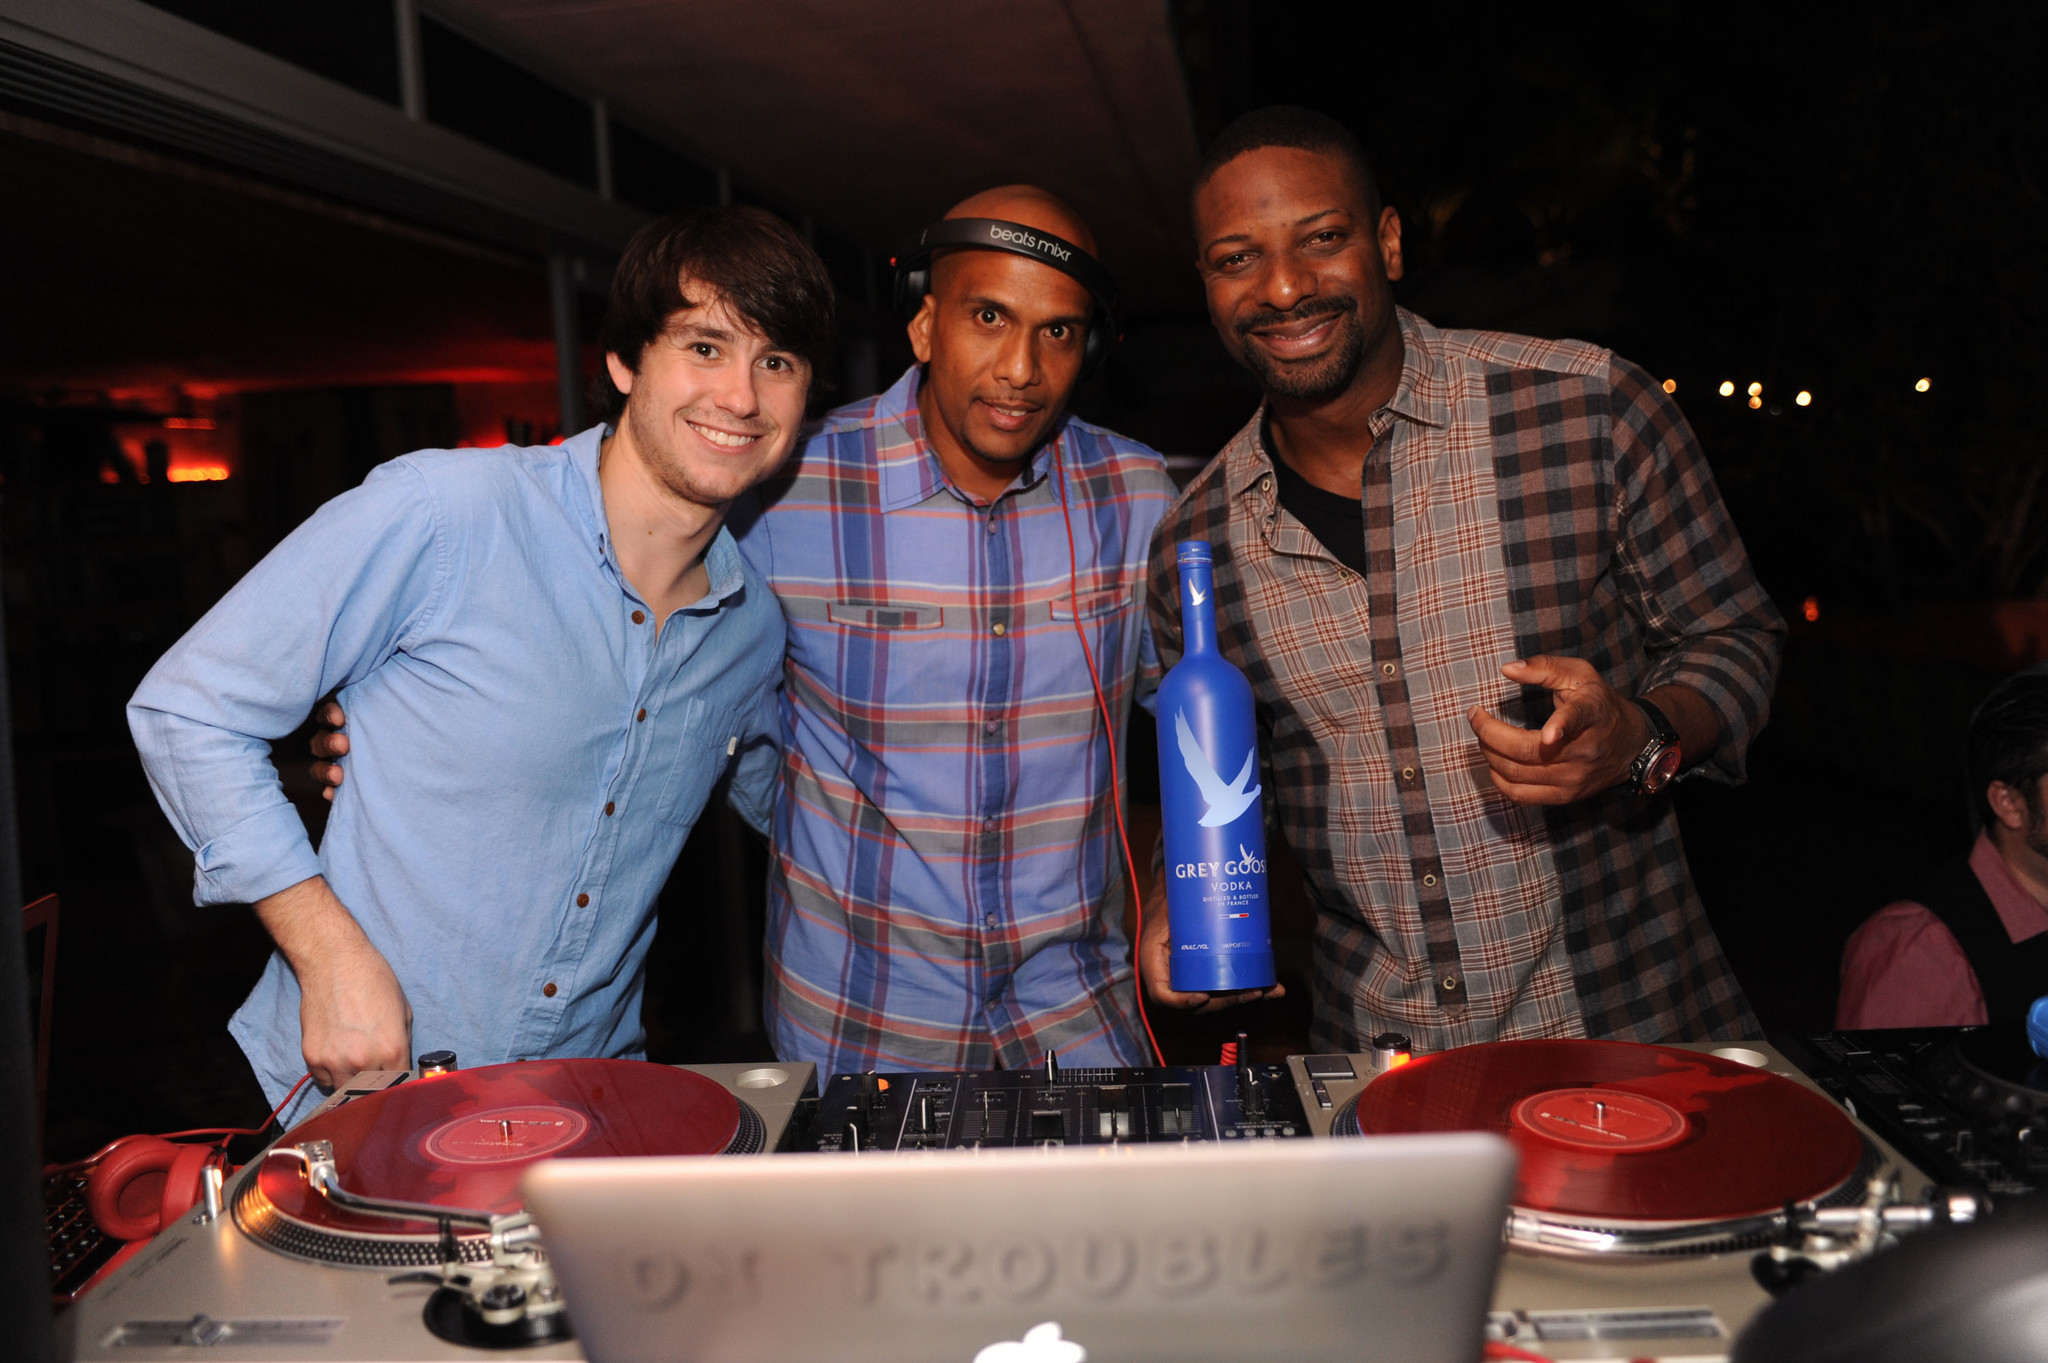 World Golf Championships-Cadillac Championship parties - Jason Kasten, DJ Troubles and DJ Irie